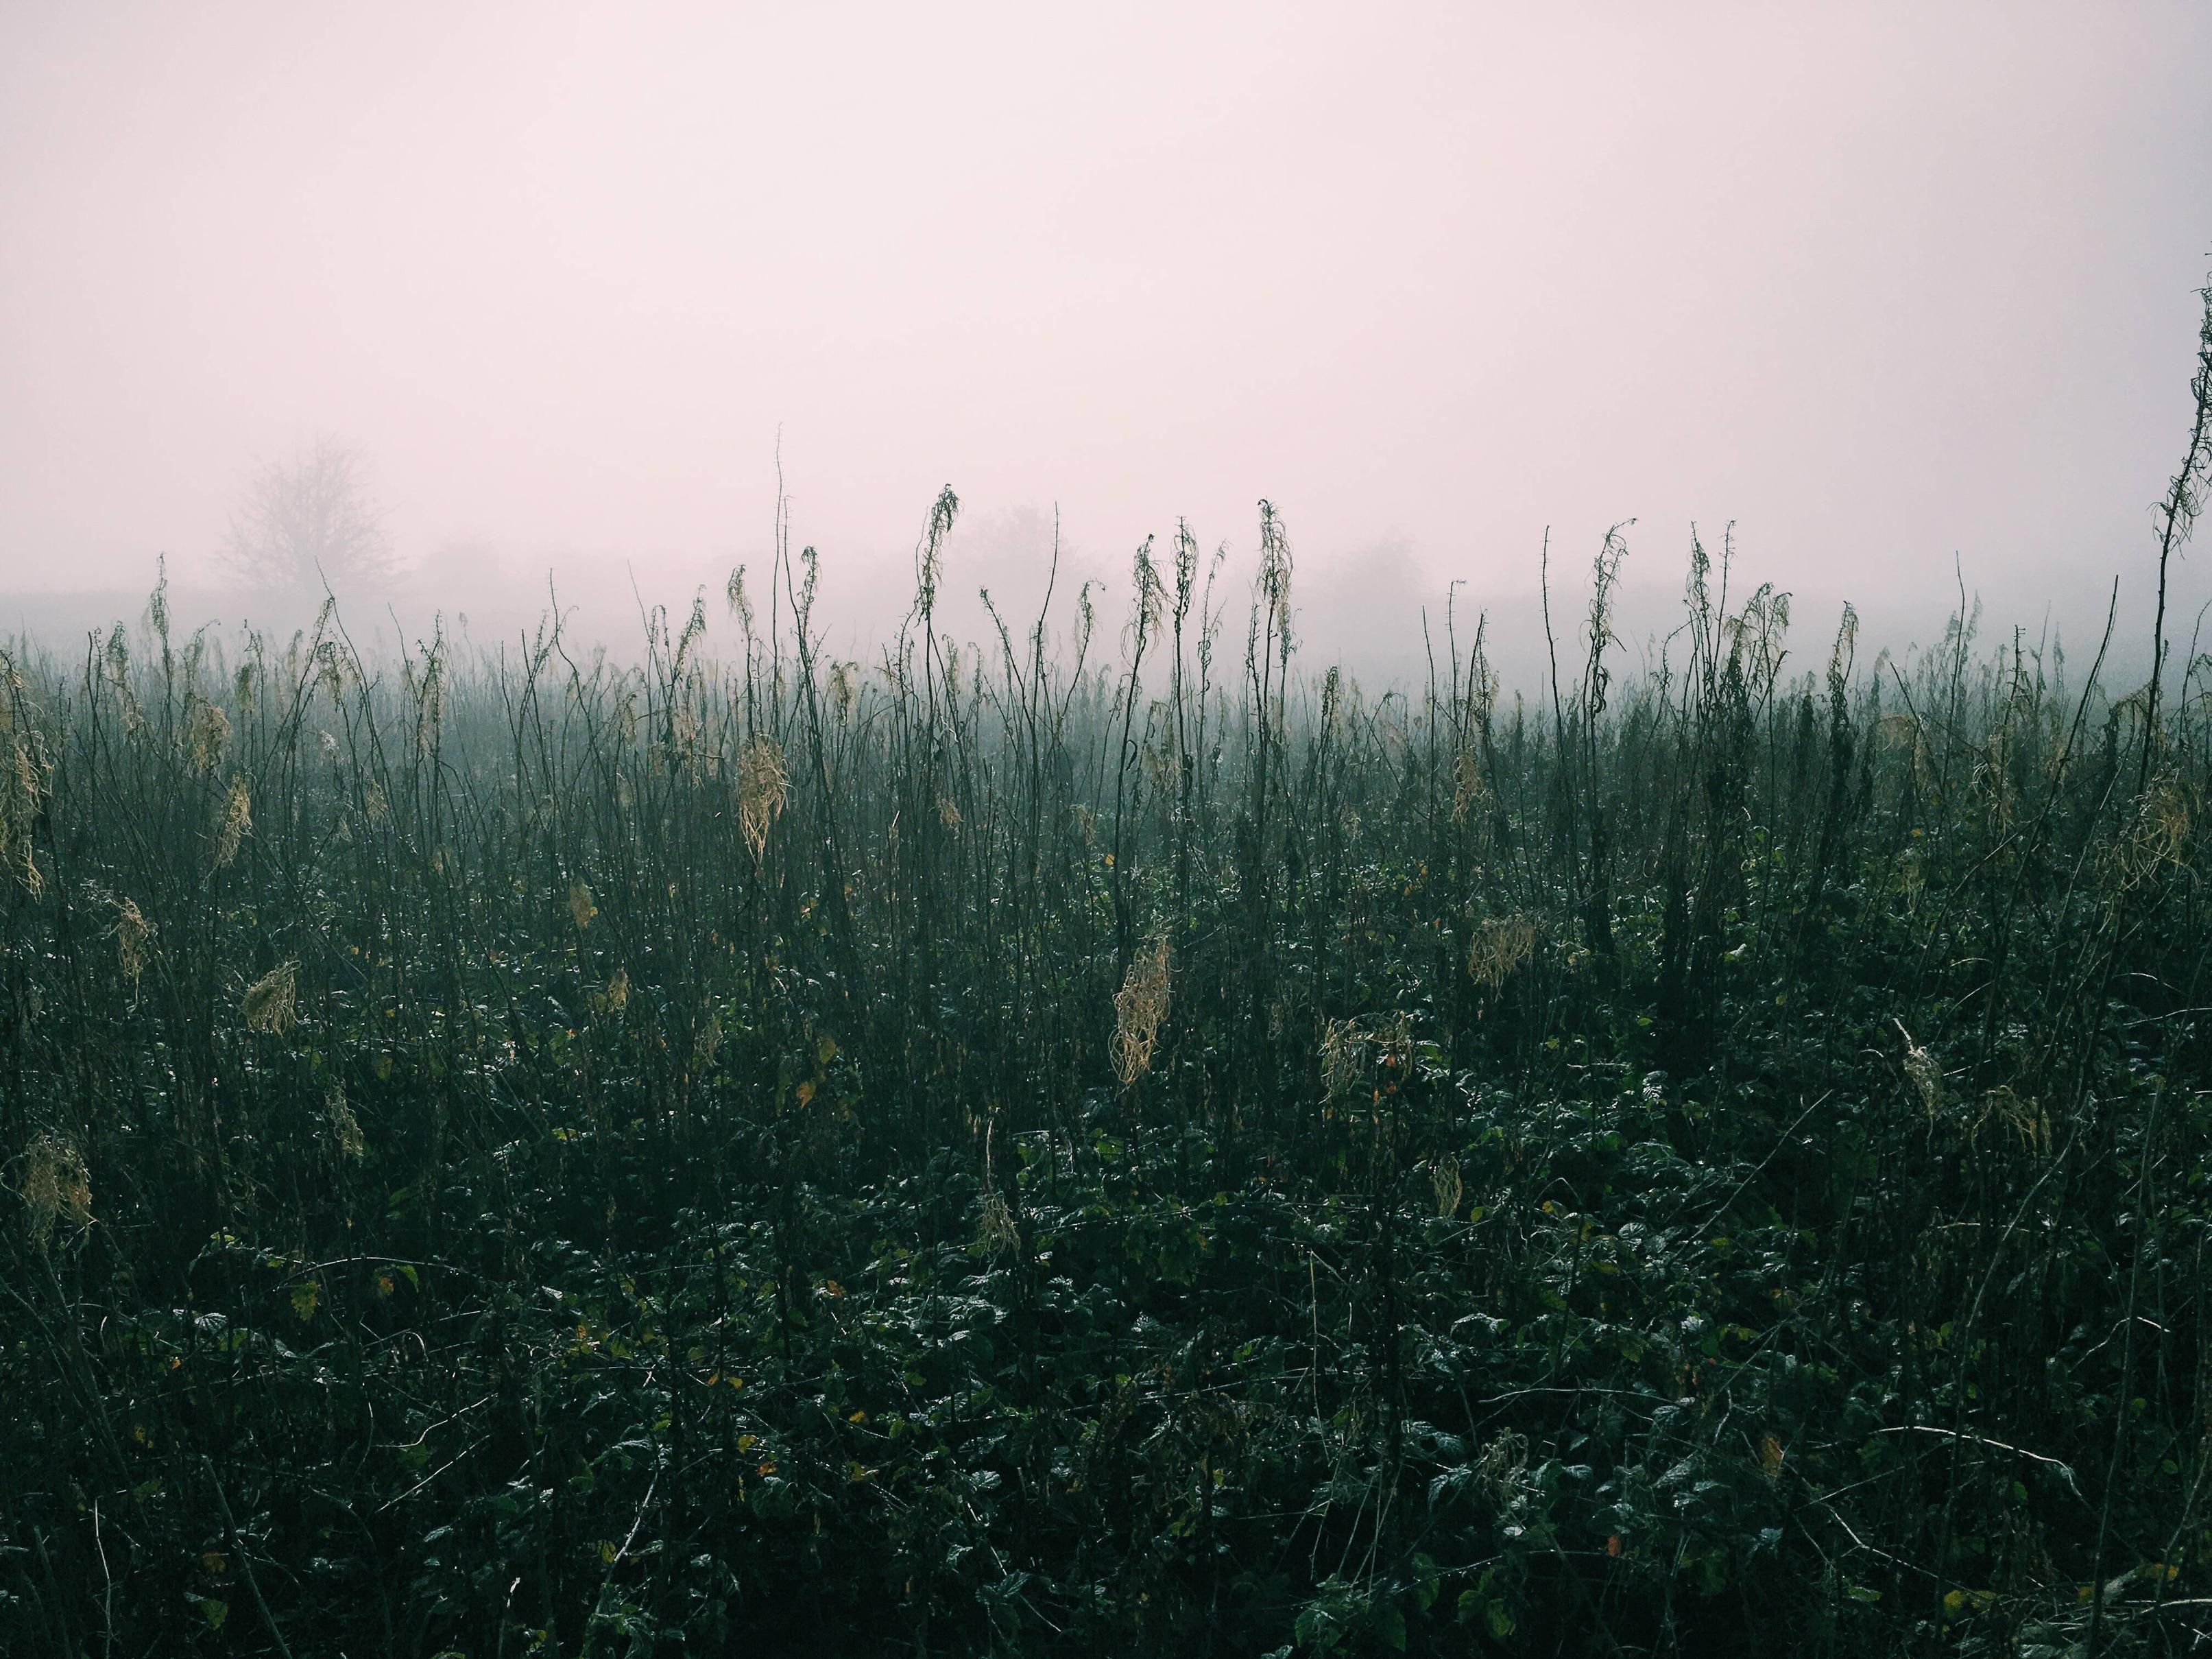 in the tall grass and fog oc 4032 x 3024 wallpapers